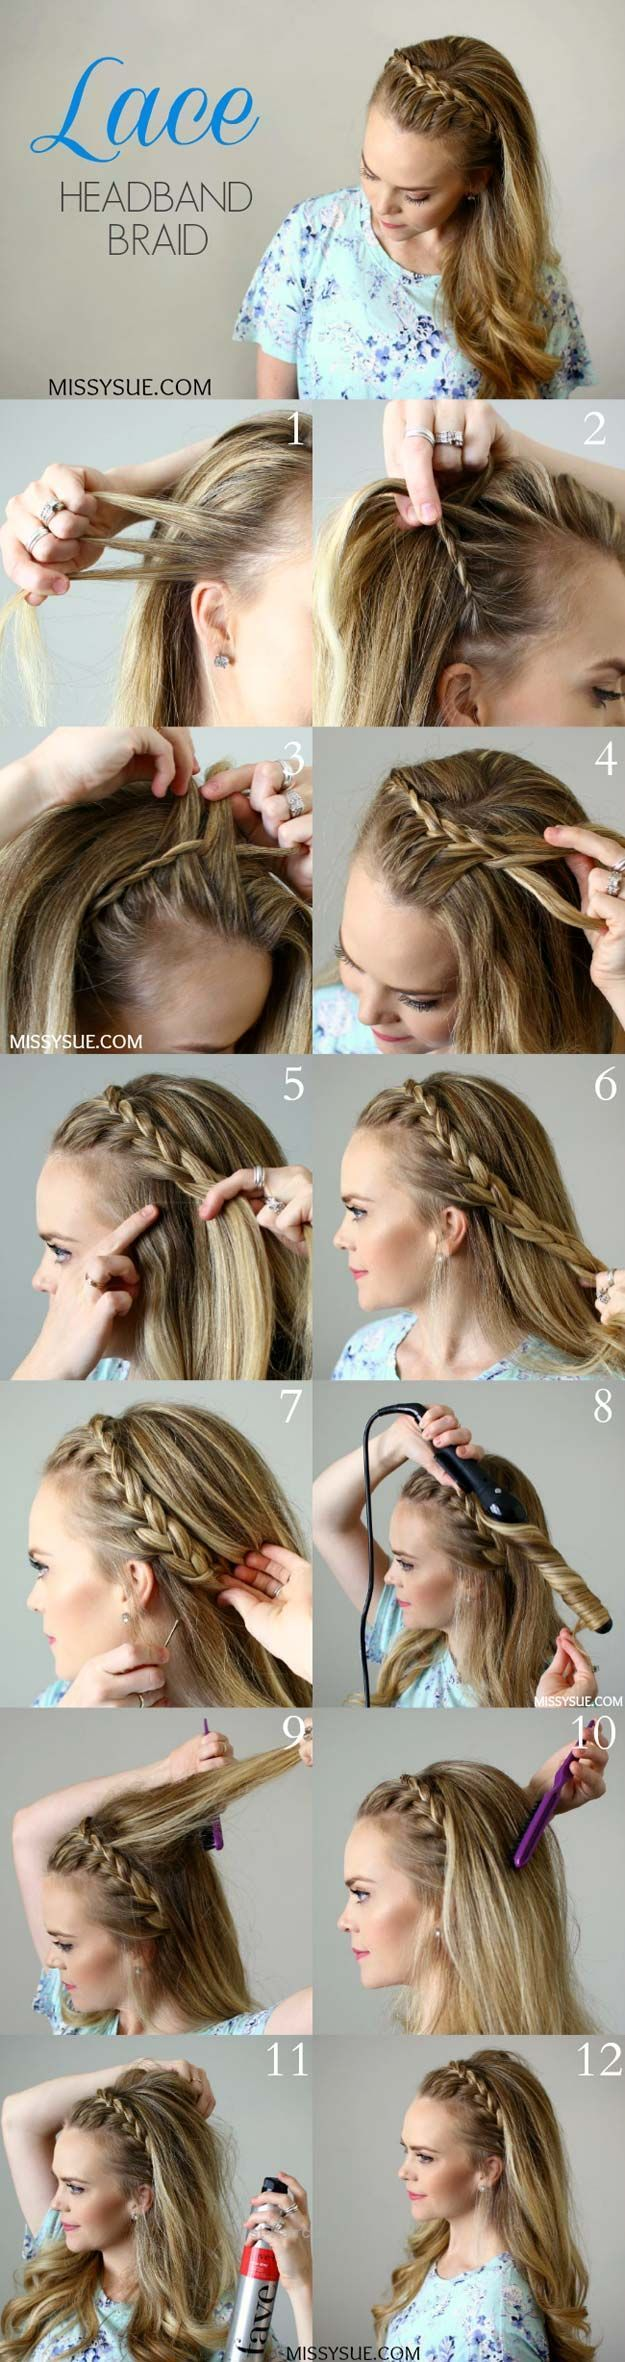 Unbelievable Best Hair Braiding Tutorials – Lace Headband Braid – Easy Step by Step Tutorials for Braids – How To Braid Fishtail, French Braids, Flower Crown, Side Braids, Cornrow ..